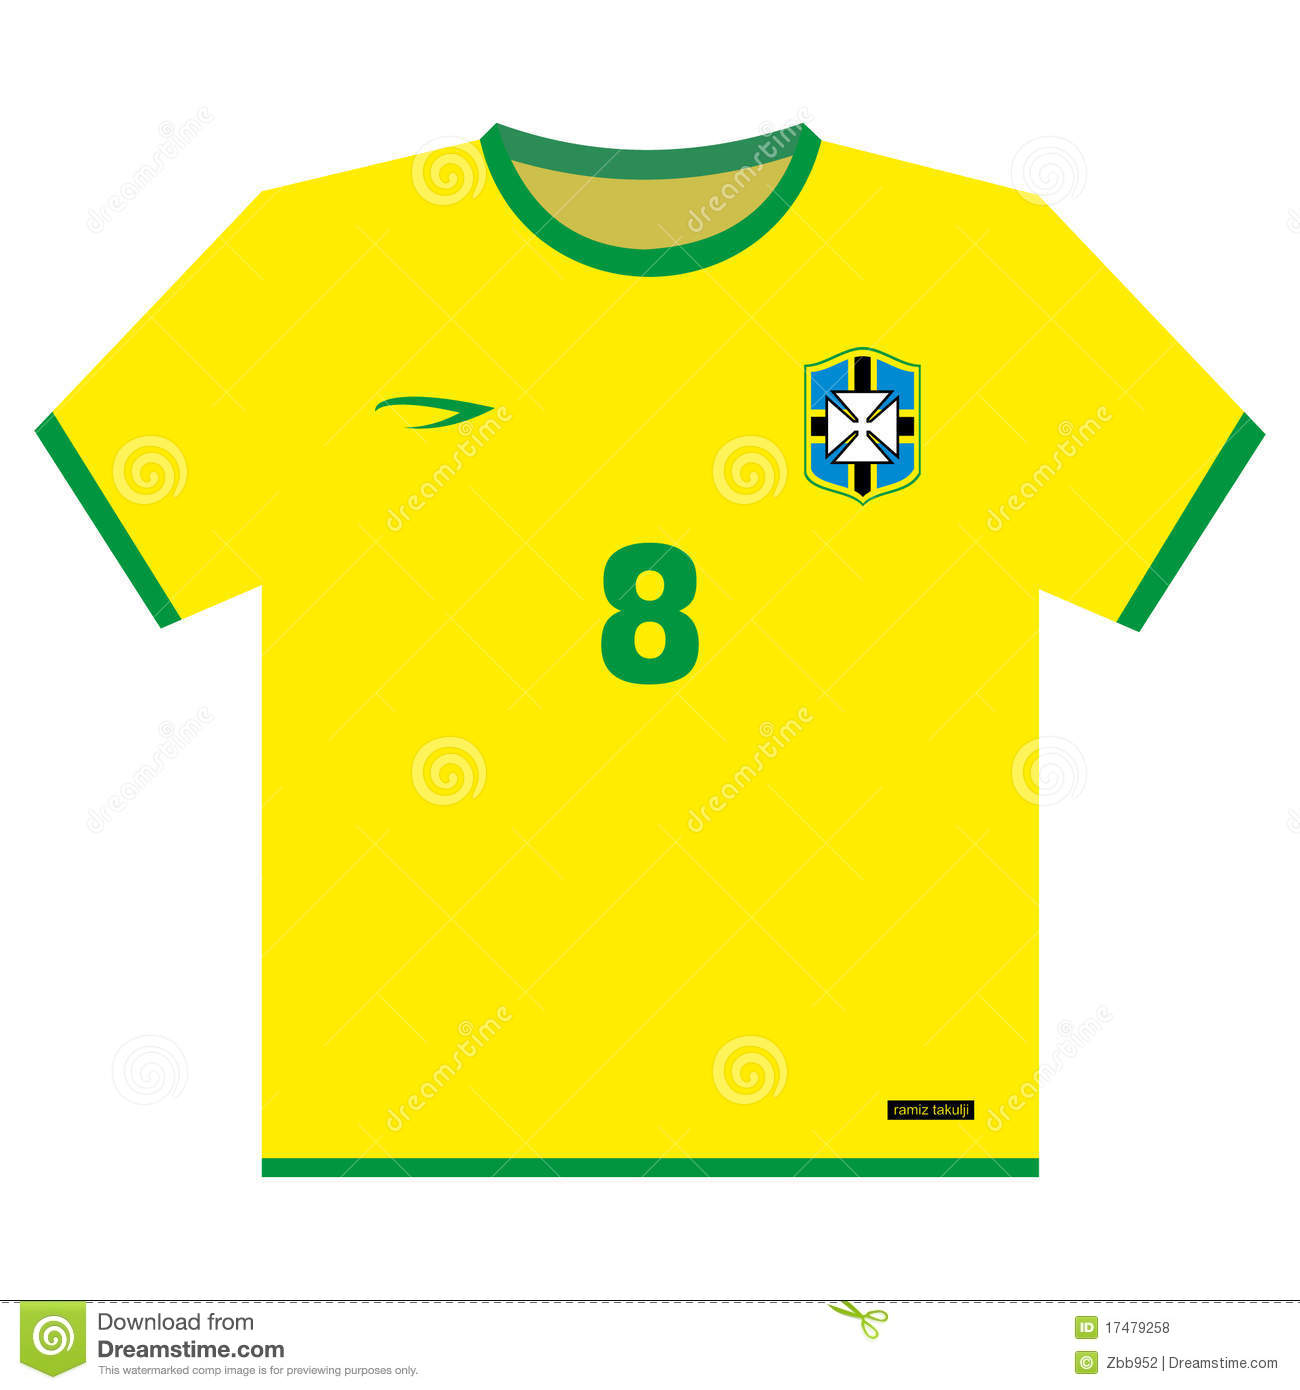 Uniform clipart soccer uniform Football Art Nfl Clip Jersey